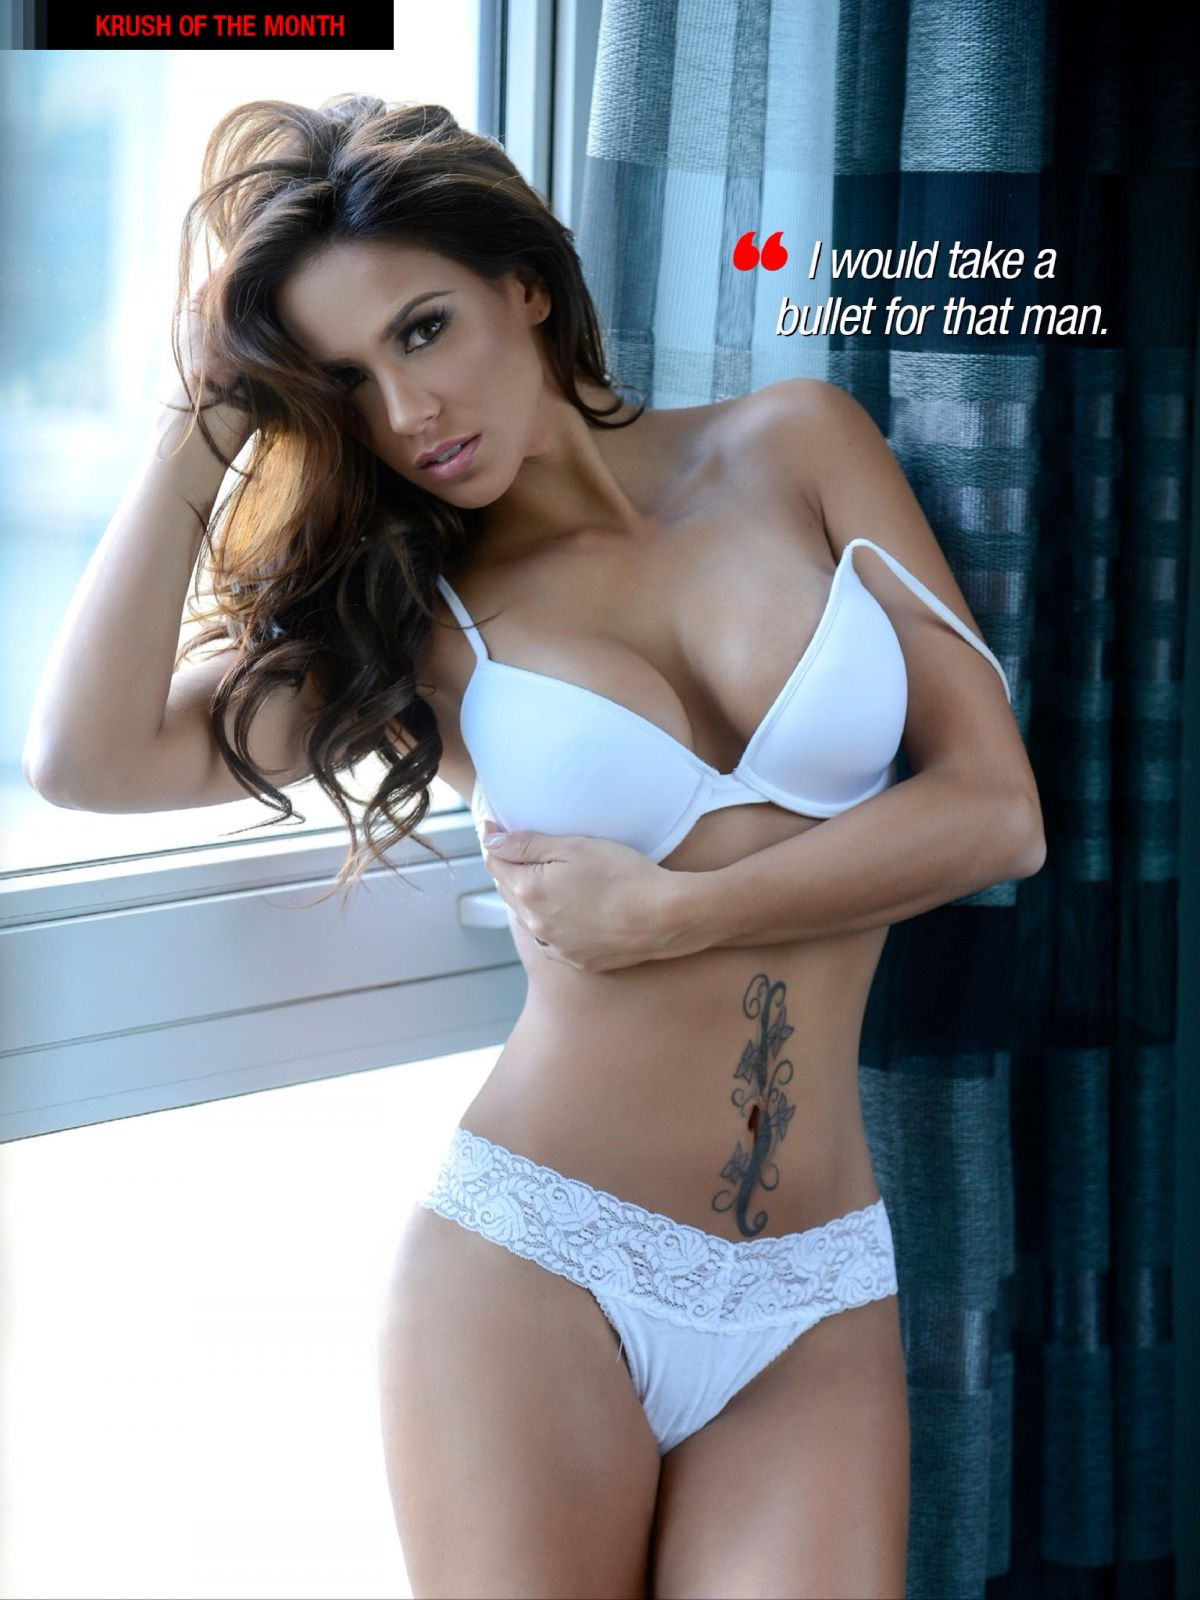 MELISSA RIO in Kandy Magazine, March 2014 Issue